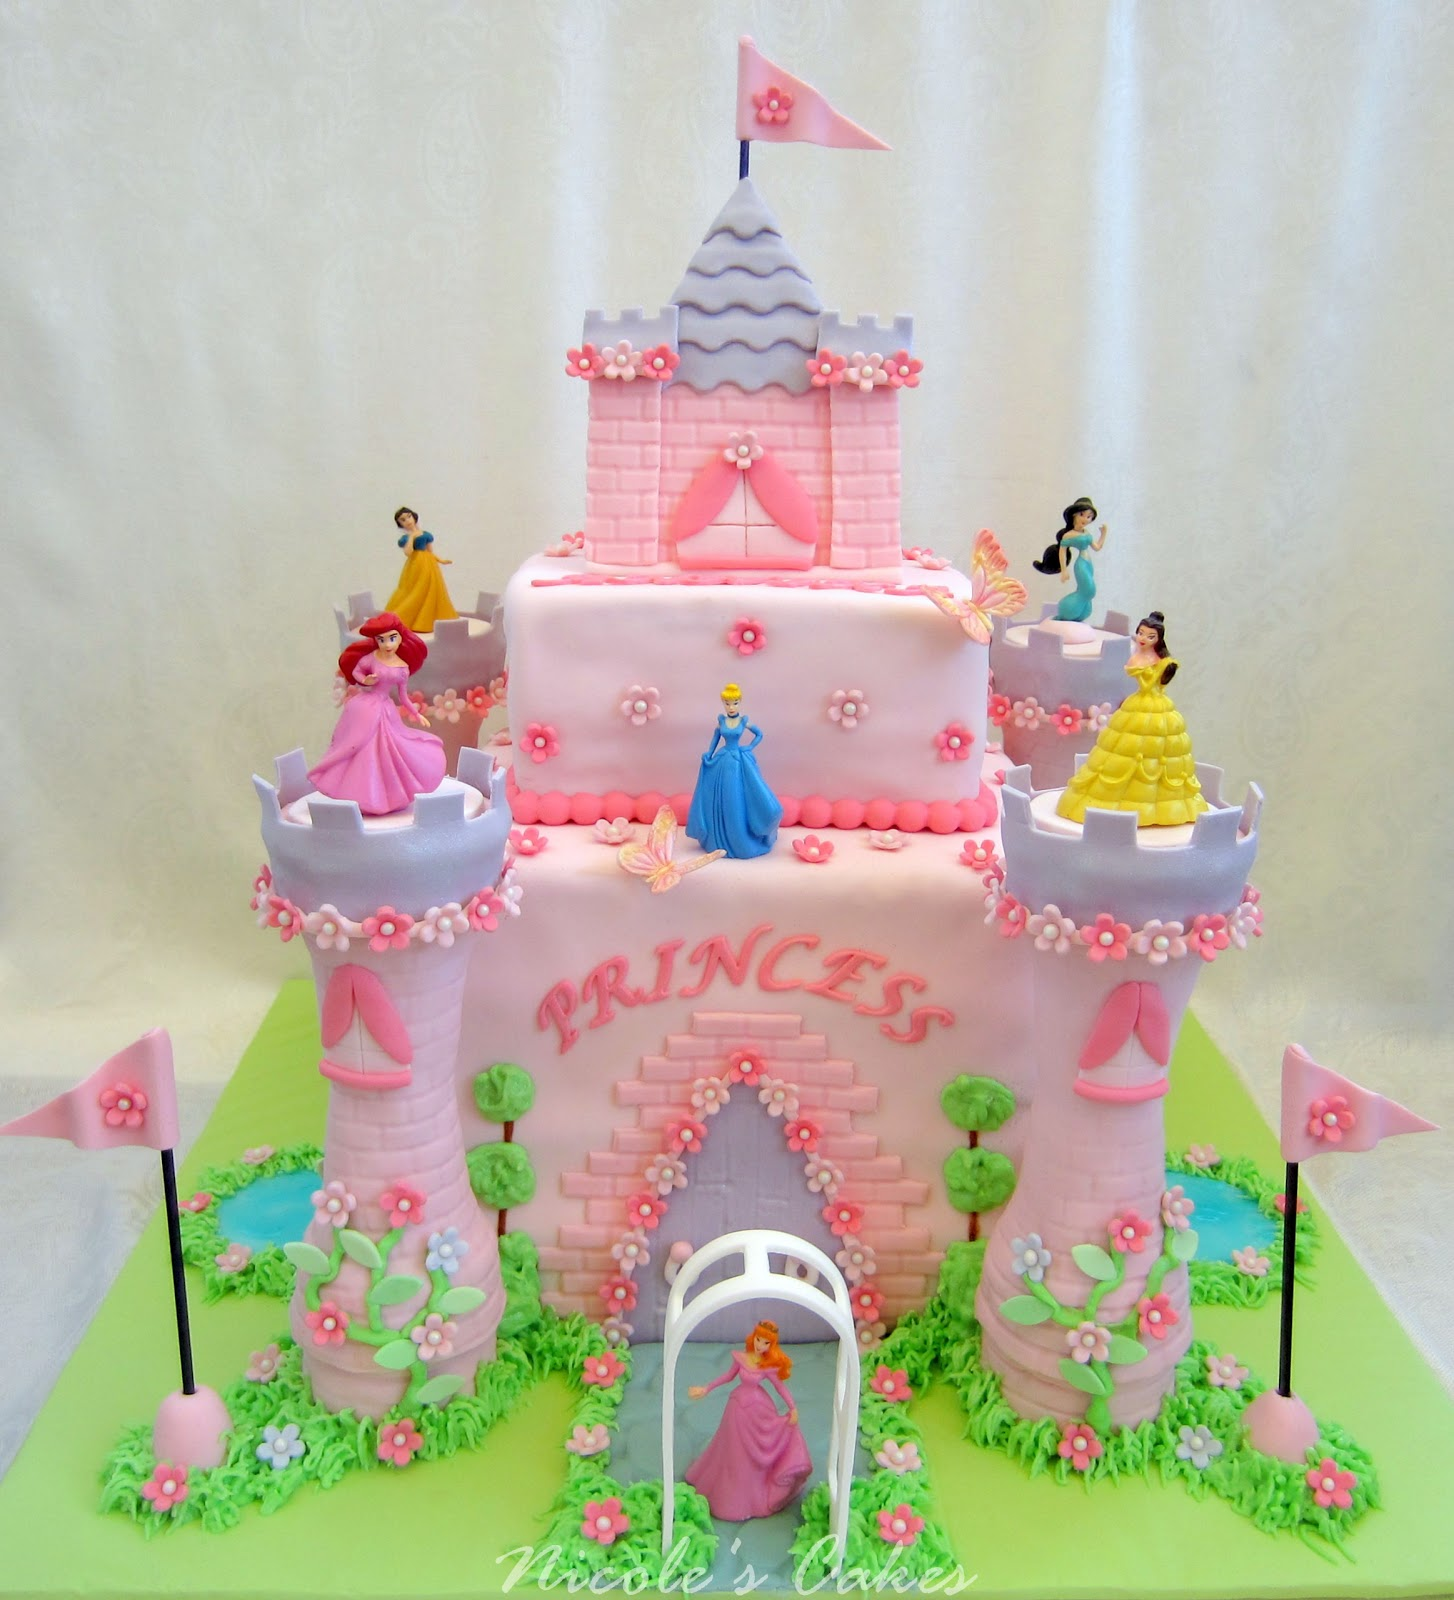 Princess Cakes 2013 - The Best Party Cake